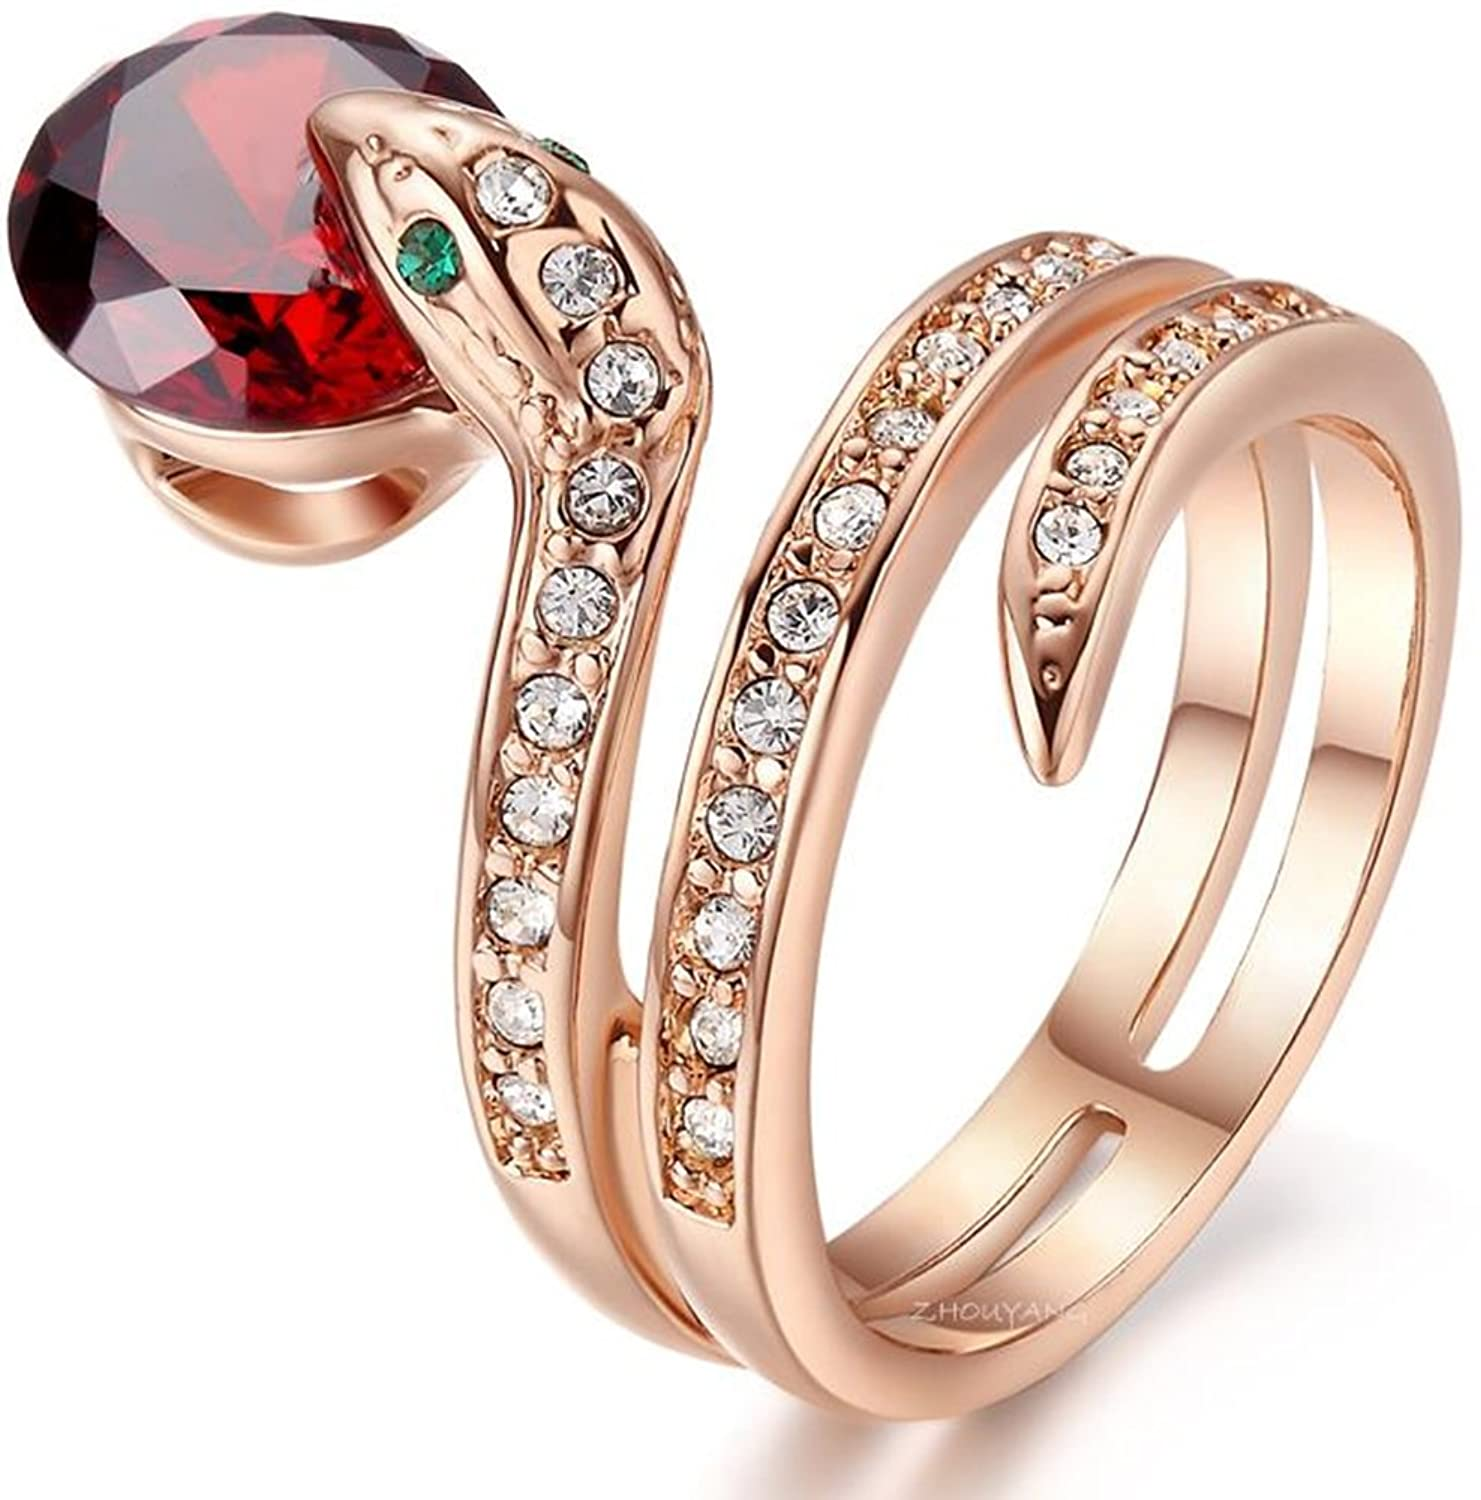 AmaranTeen - Rose Gold Plated Genuine Austrian Crystals Snake Ring